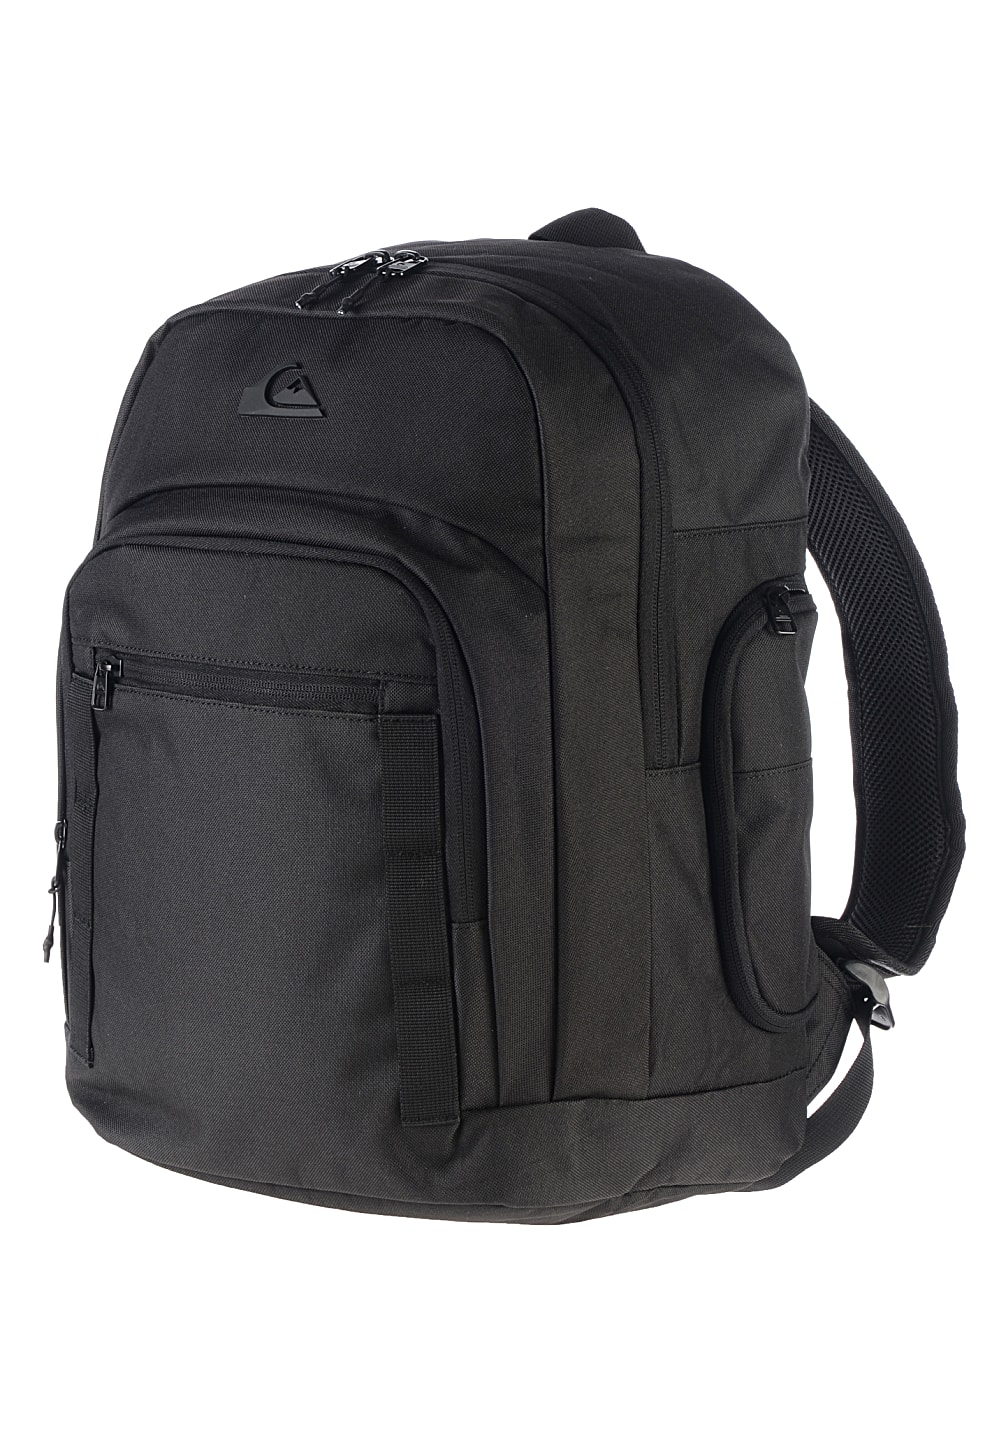 quiksilver schoolie rucksack f r herren schwarz planet sports. Black Bedroom Furniture Sets. Home Design Ideas